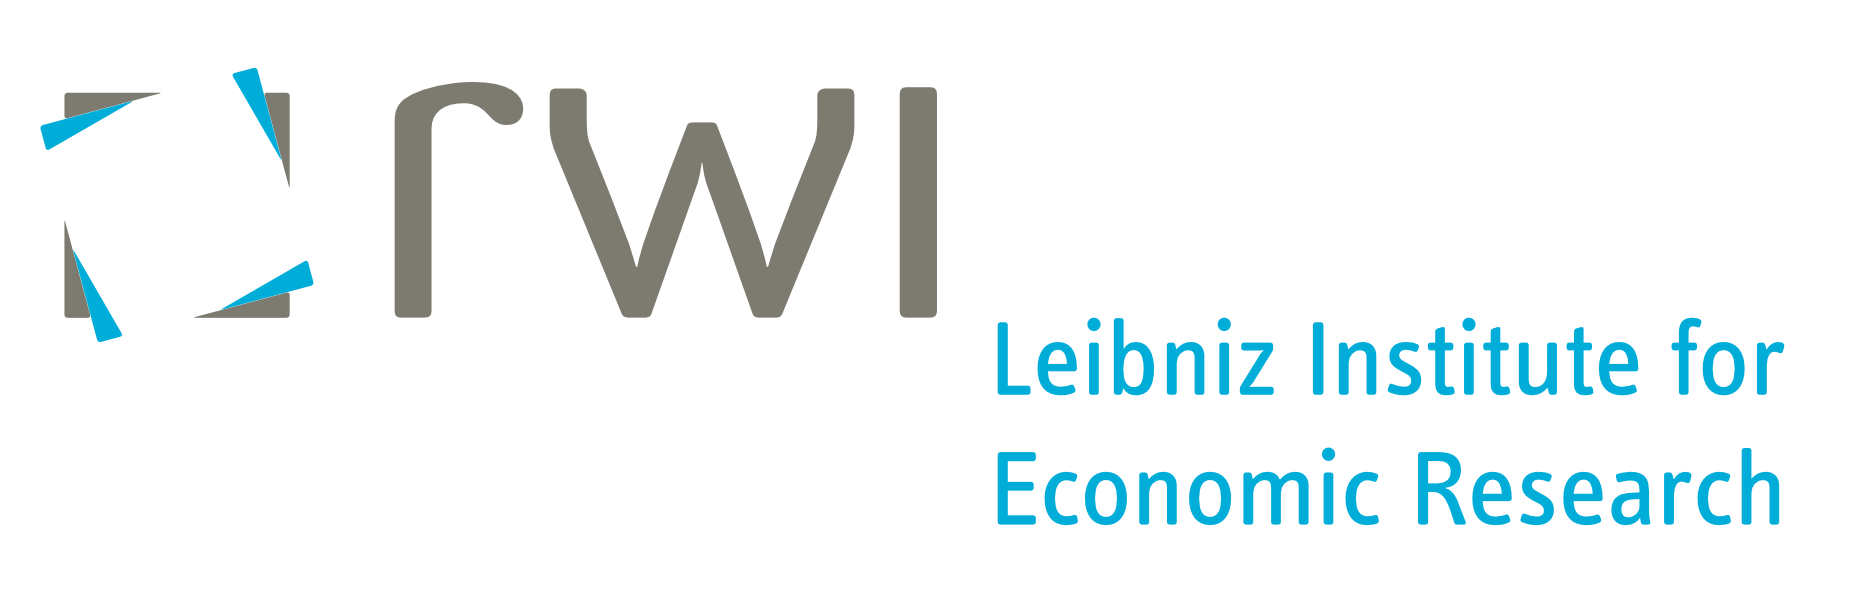 RWI - Leibniz Institute for Economic Research